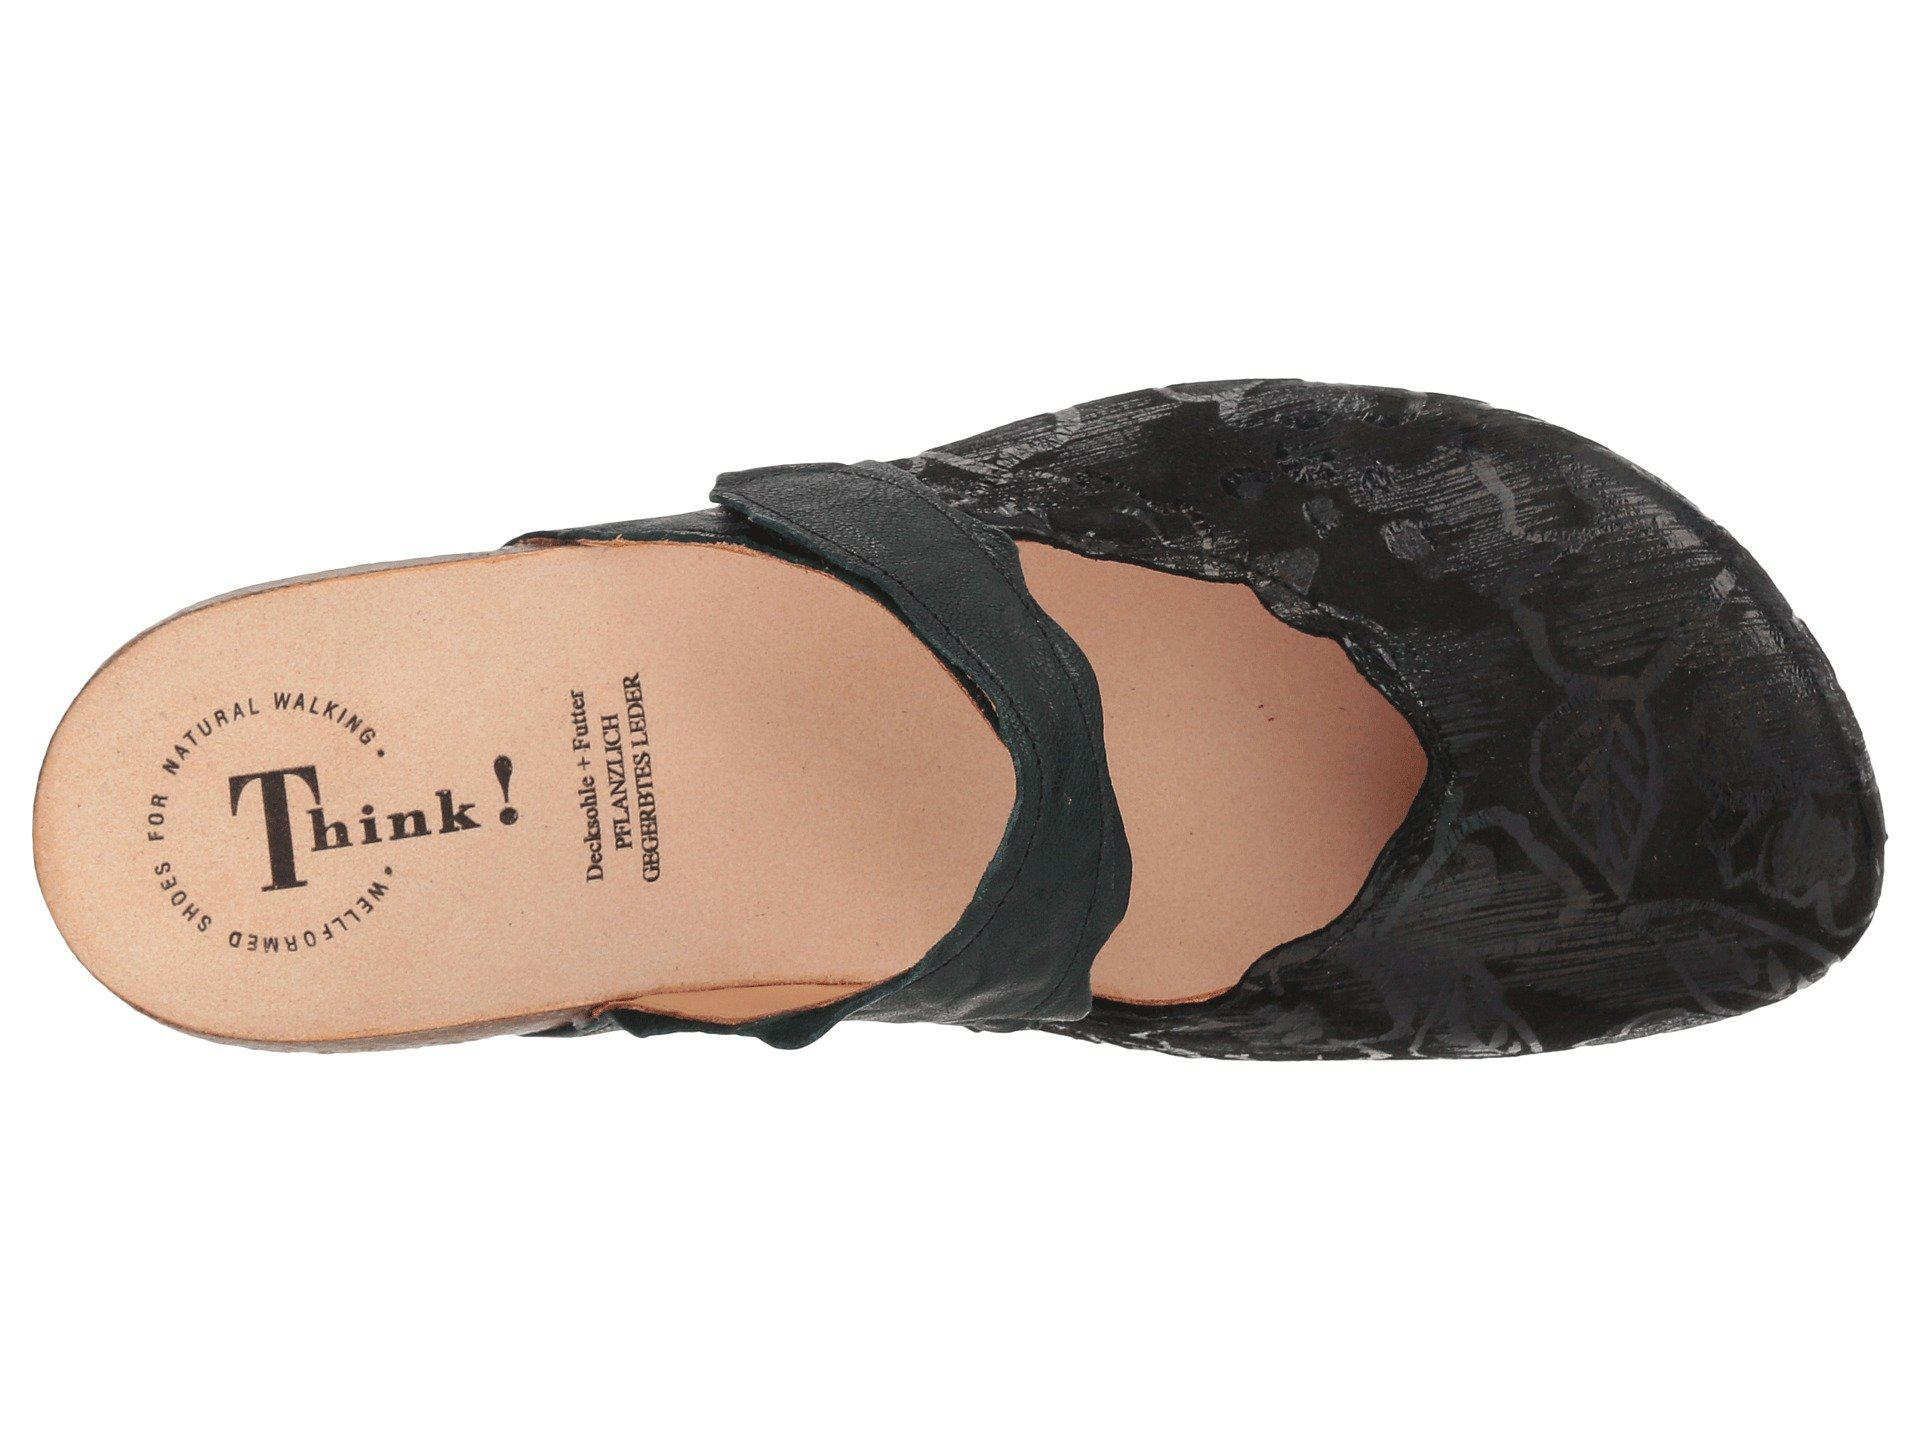 37aaafd854fe2 Lyst - Think! Julia - 83345 (black) Women s Clog Shoes in Black